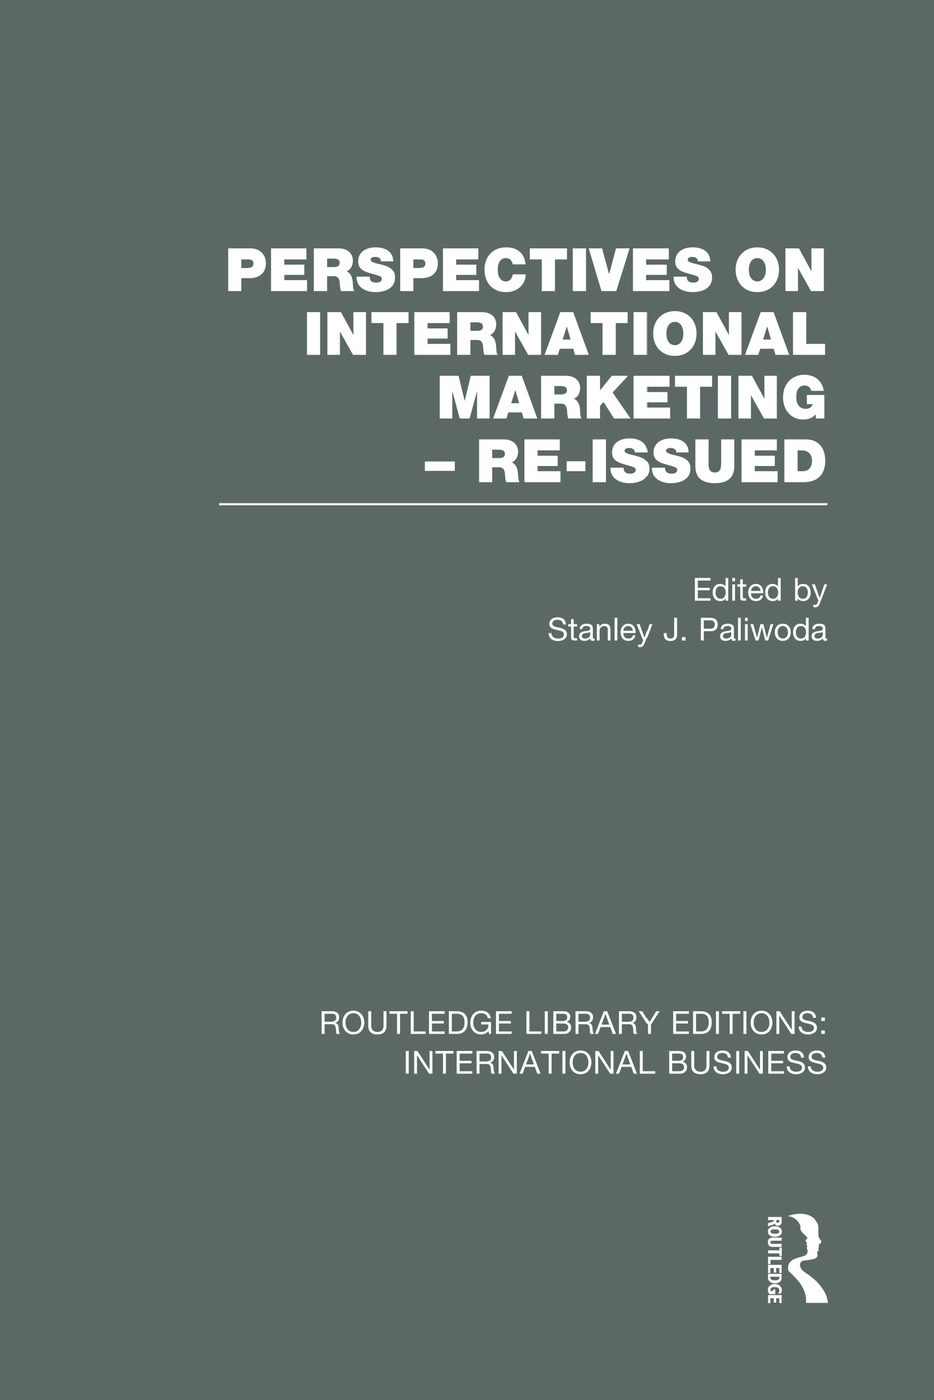 Perspectives on International Marketing - Re-issued (RLE International Business)